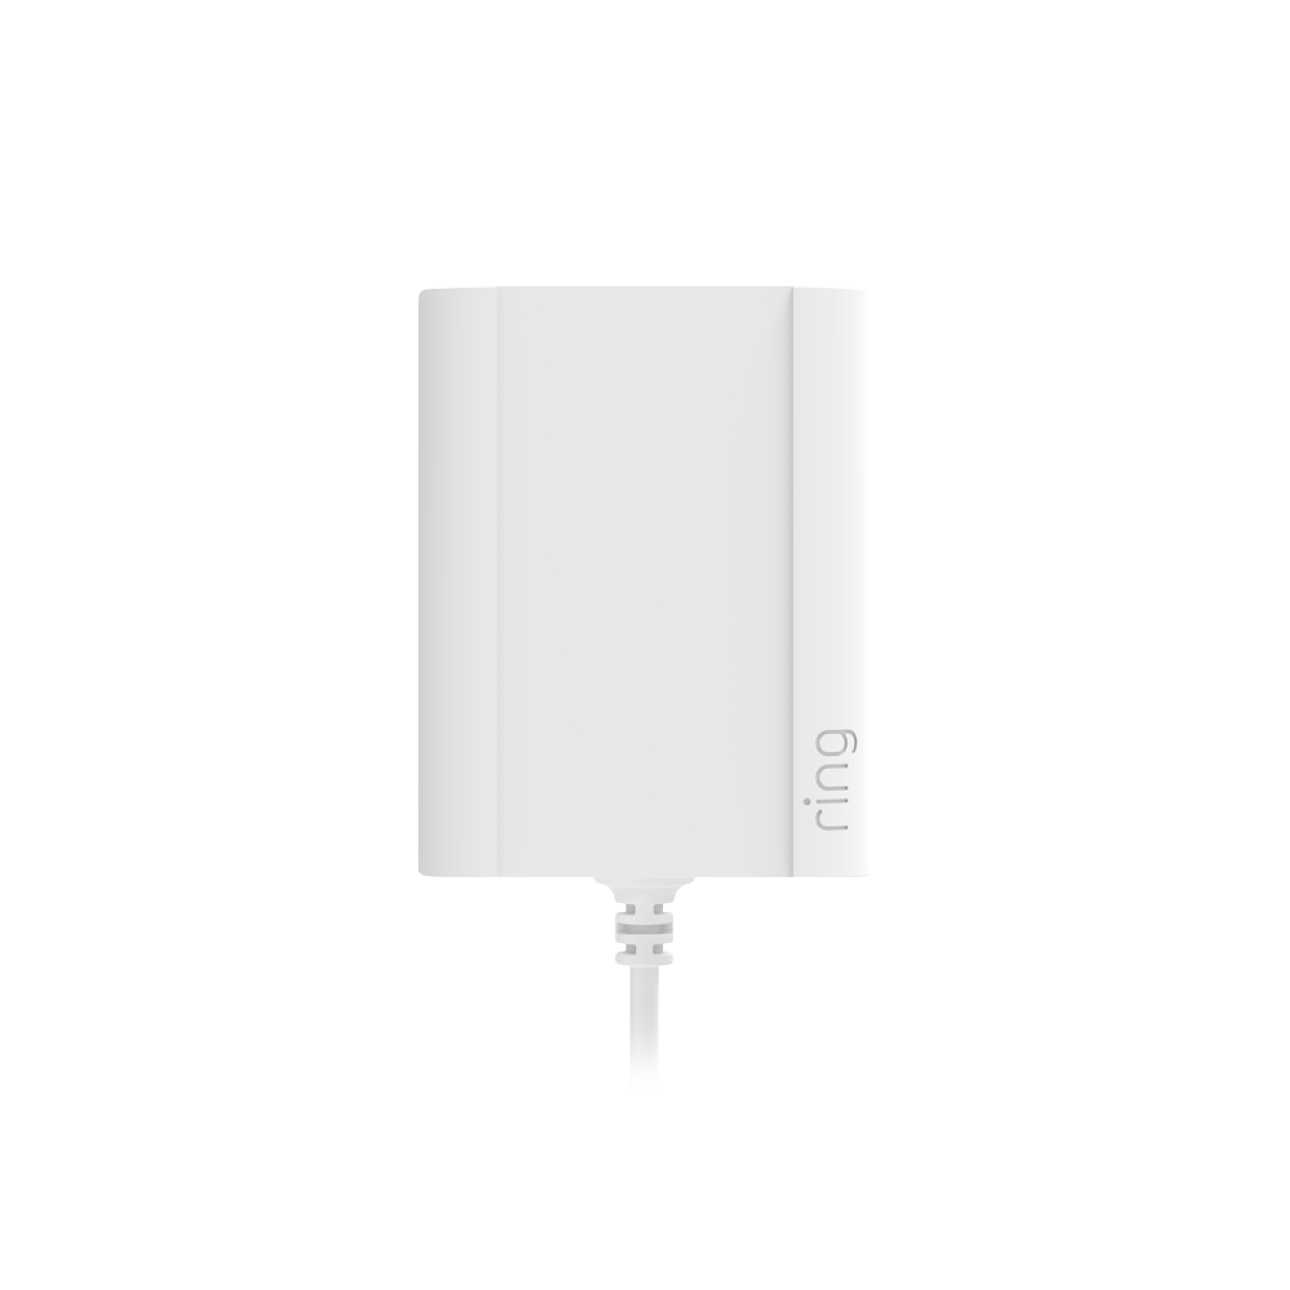 products/3.accessory_pluginadaptergen2_wht_front_290x1290_648b722f-3c0e-4269-a009-41542a1cab4c.png